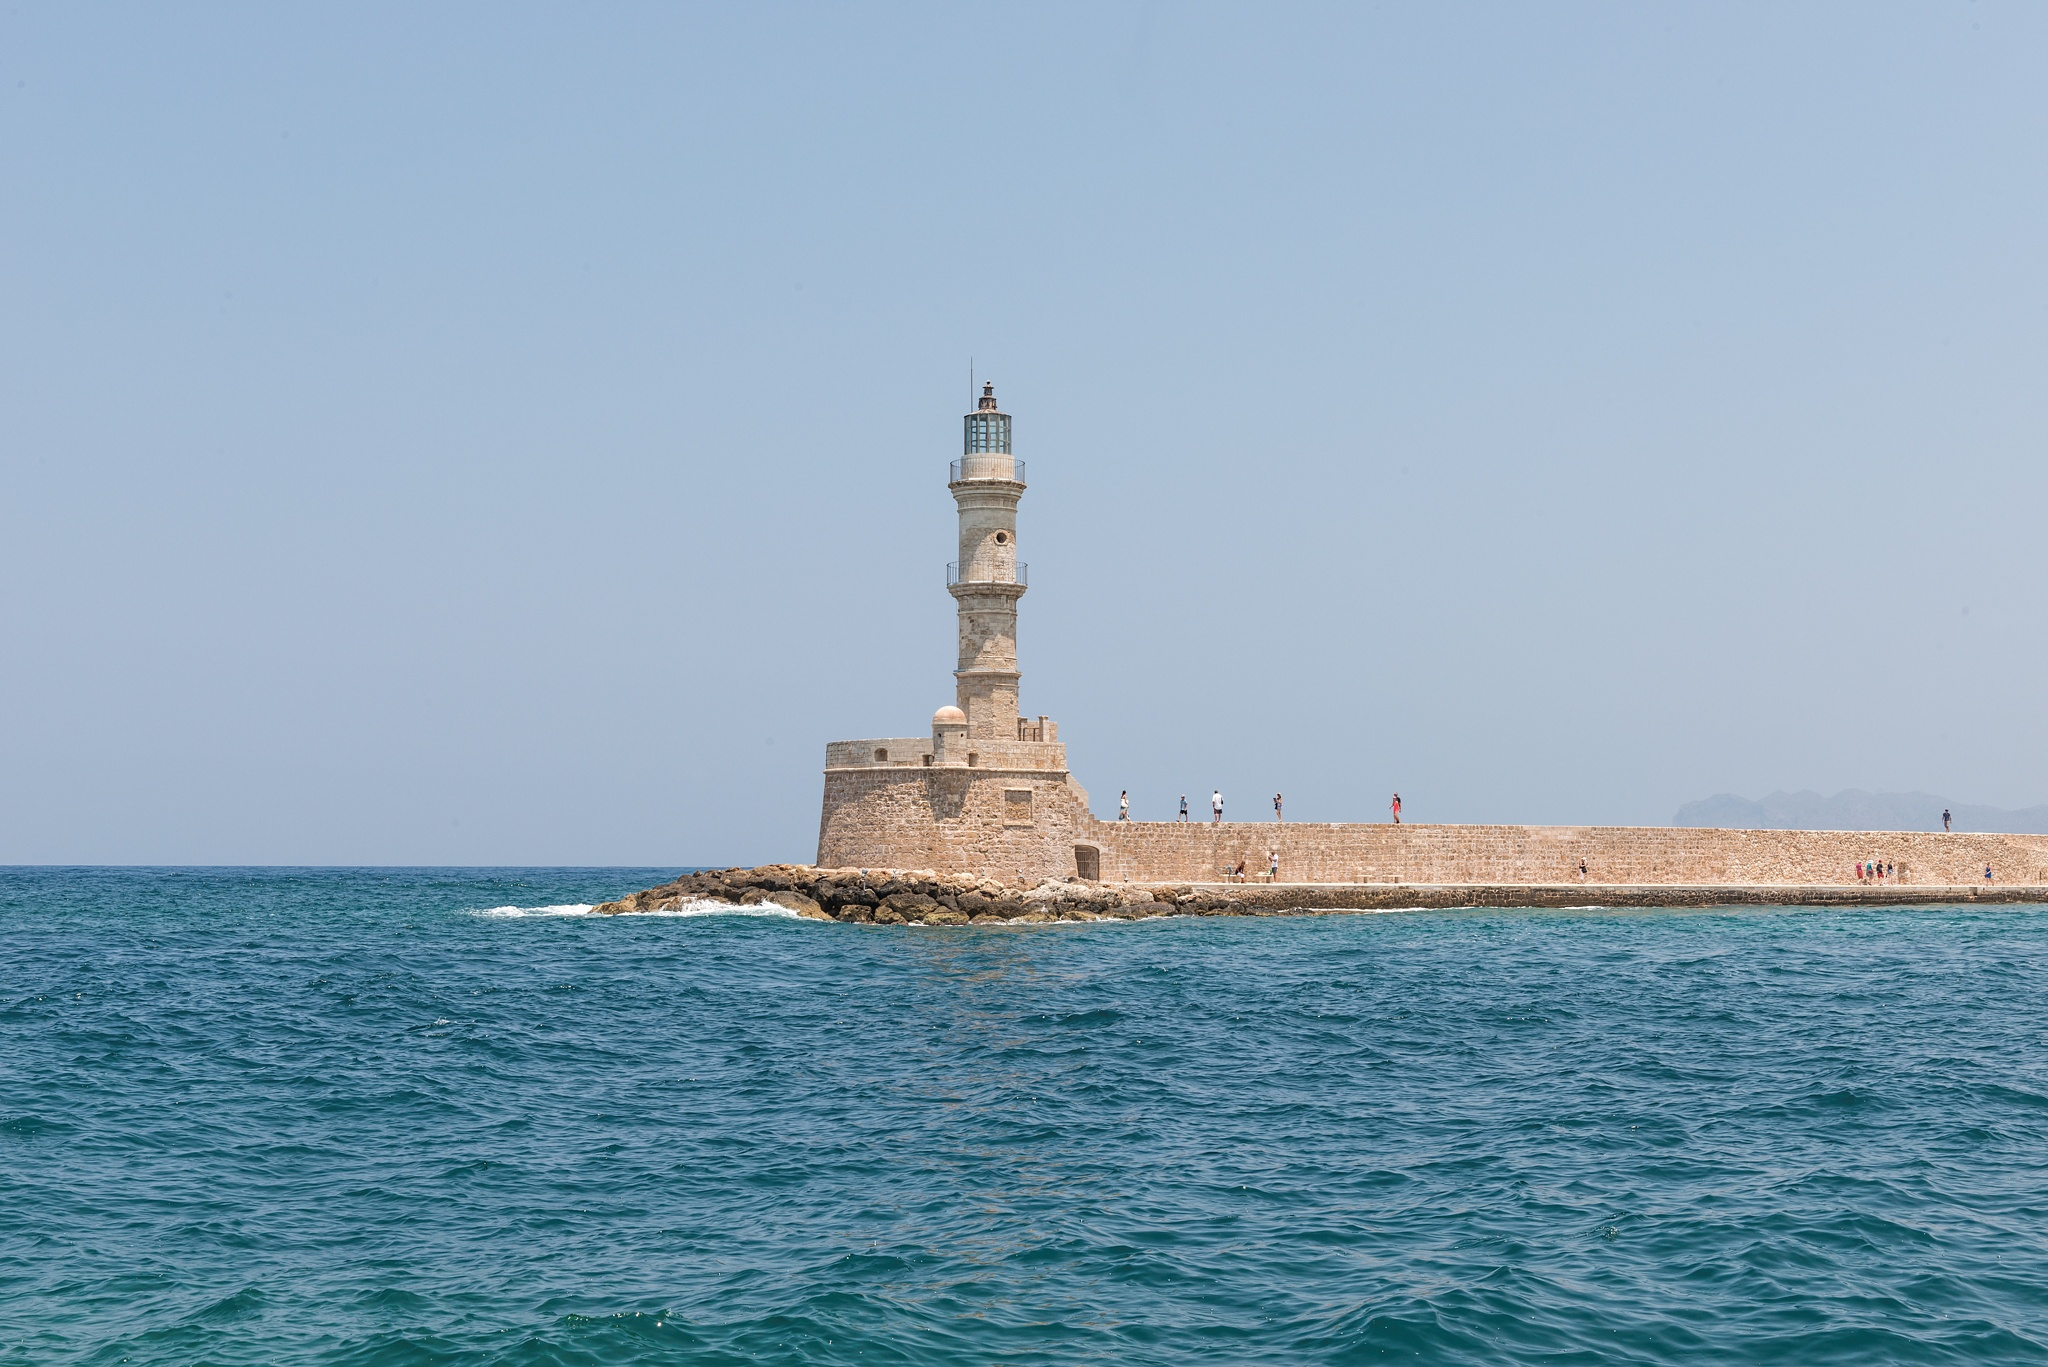 Chania Lighthouse at the port by Carlos Aranguiz